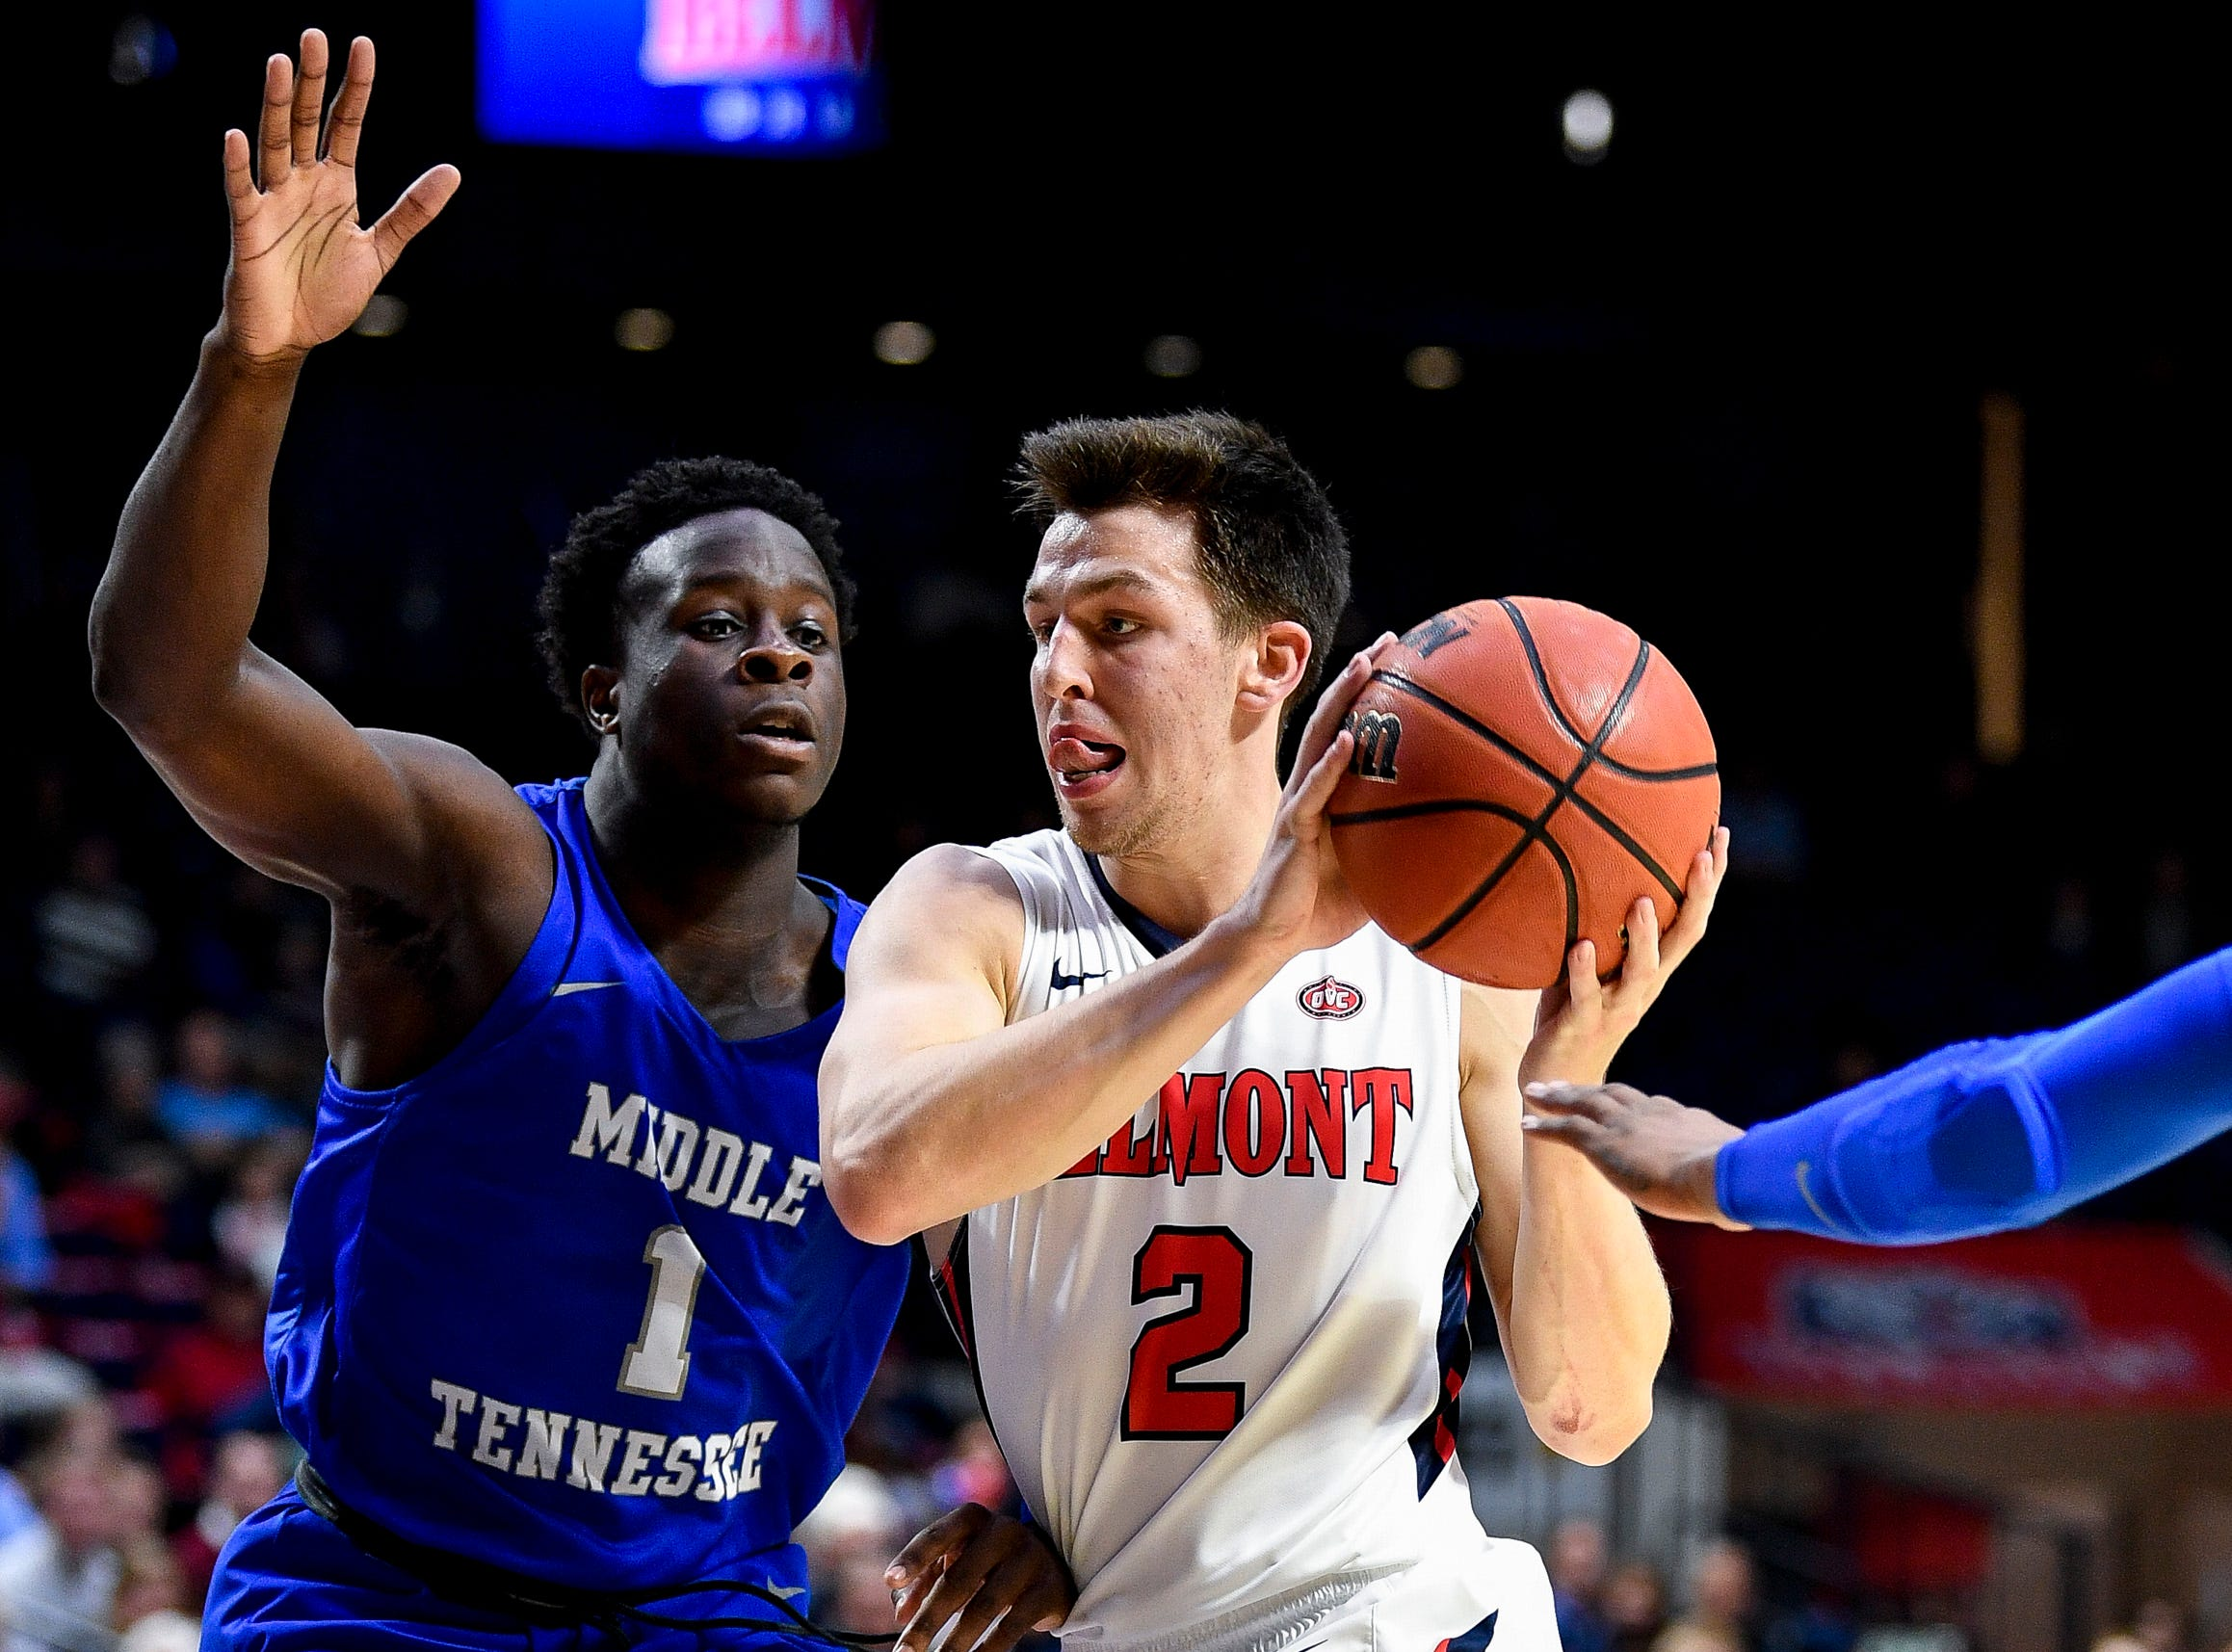 Belmont guard Grayson Murphy (2) advances into MTSU guard Junior Farquhar (1) during the first half at the Curb Event Center Arena in Nashville, Tenn., Monday, Nov. 12, 2018.